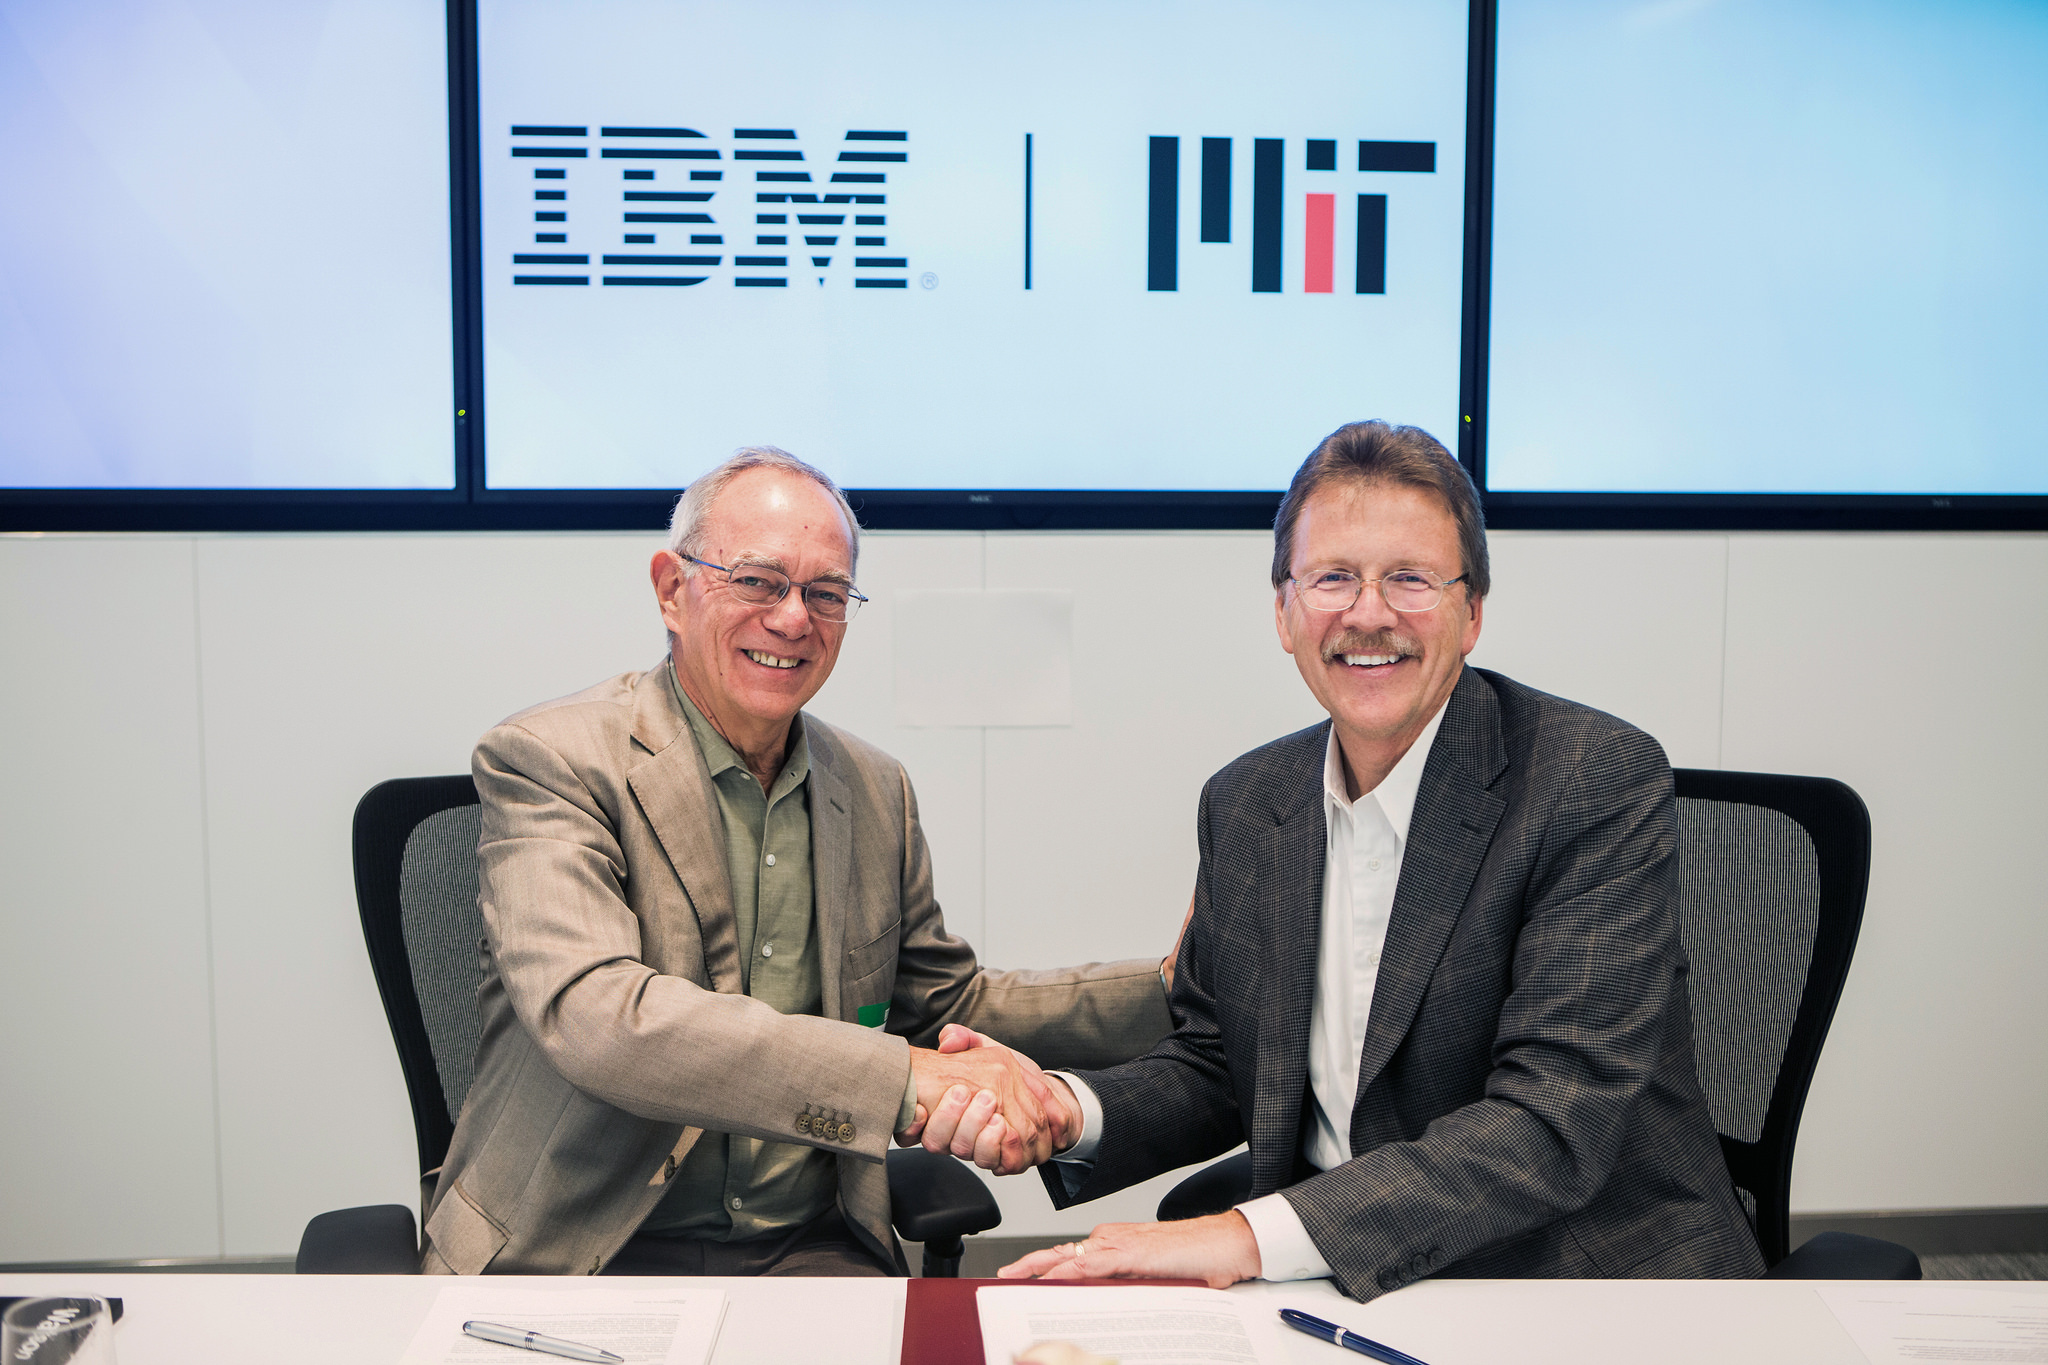 MIT President, Dr. L Rafael Reif and IBM Senior Vice President, Cognitive Solutions and Research, Dr. John Kelly III